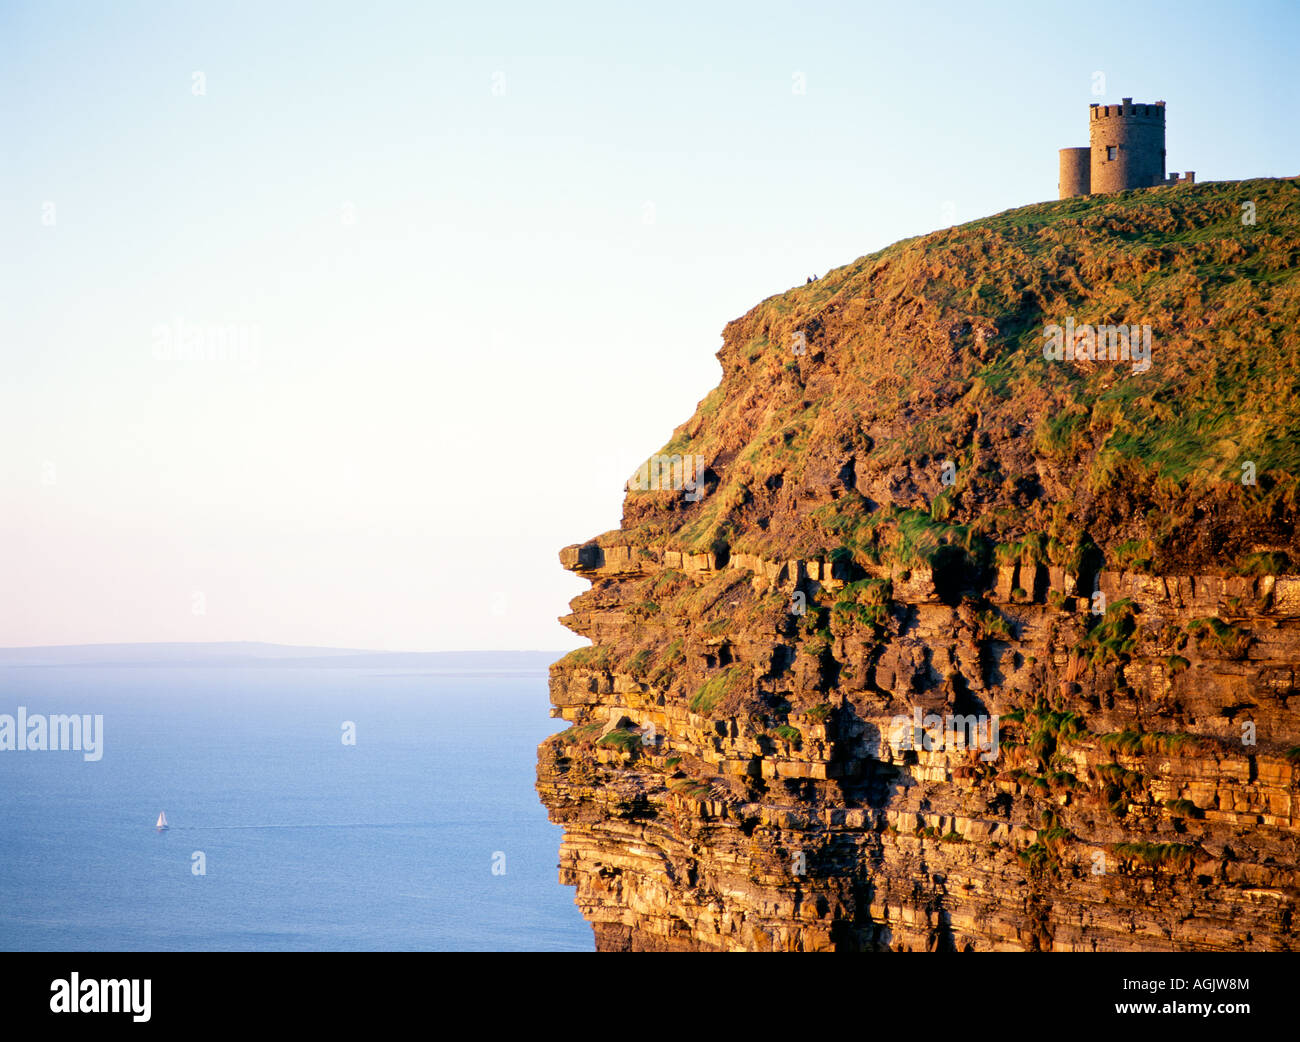 O'Briens Tower on top of the sheer Cliffs of Moher, County Clare, west Ireland. Sailboat yacht in distance. Atlantic - Stock Image